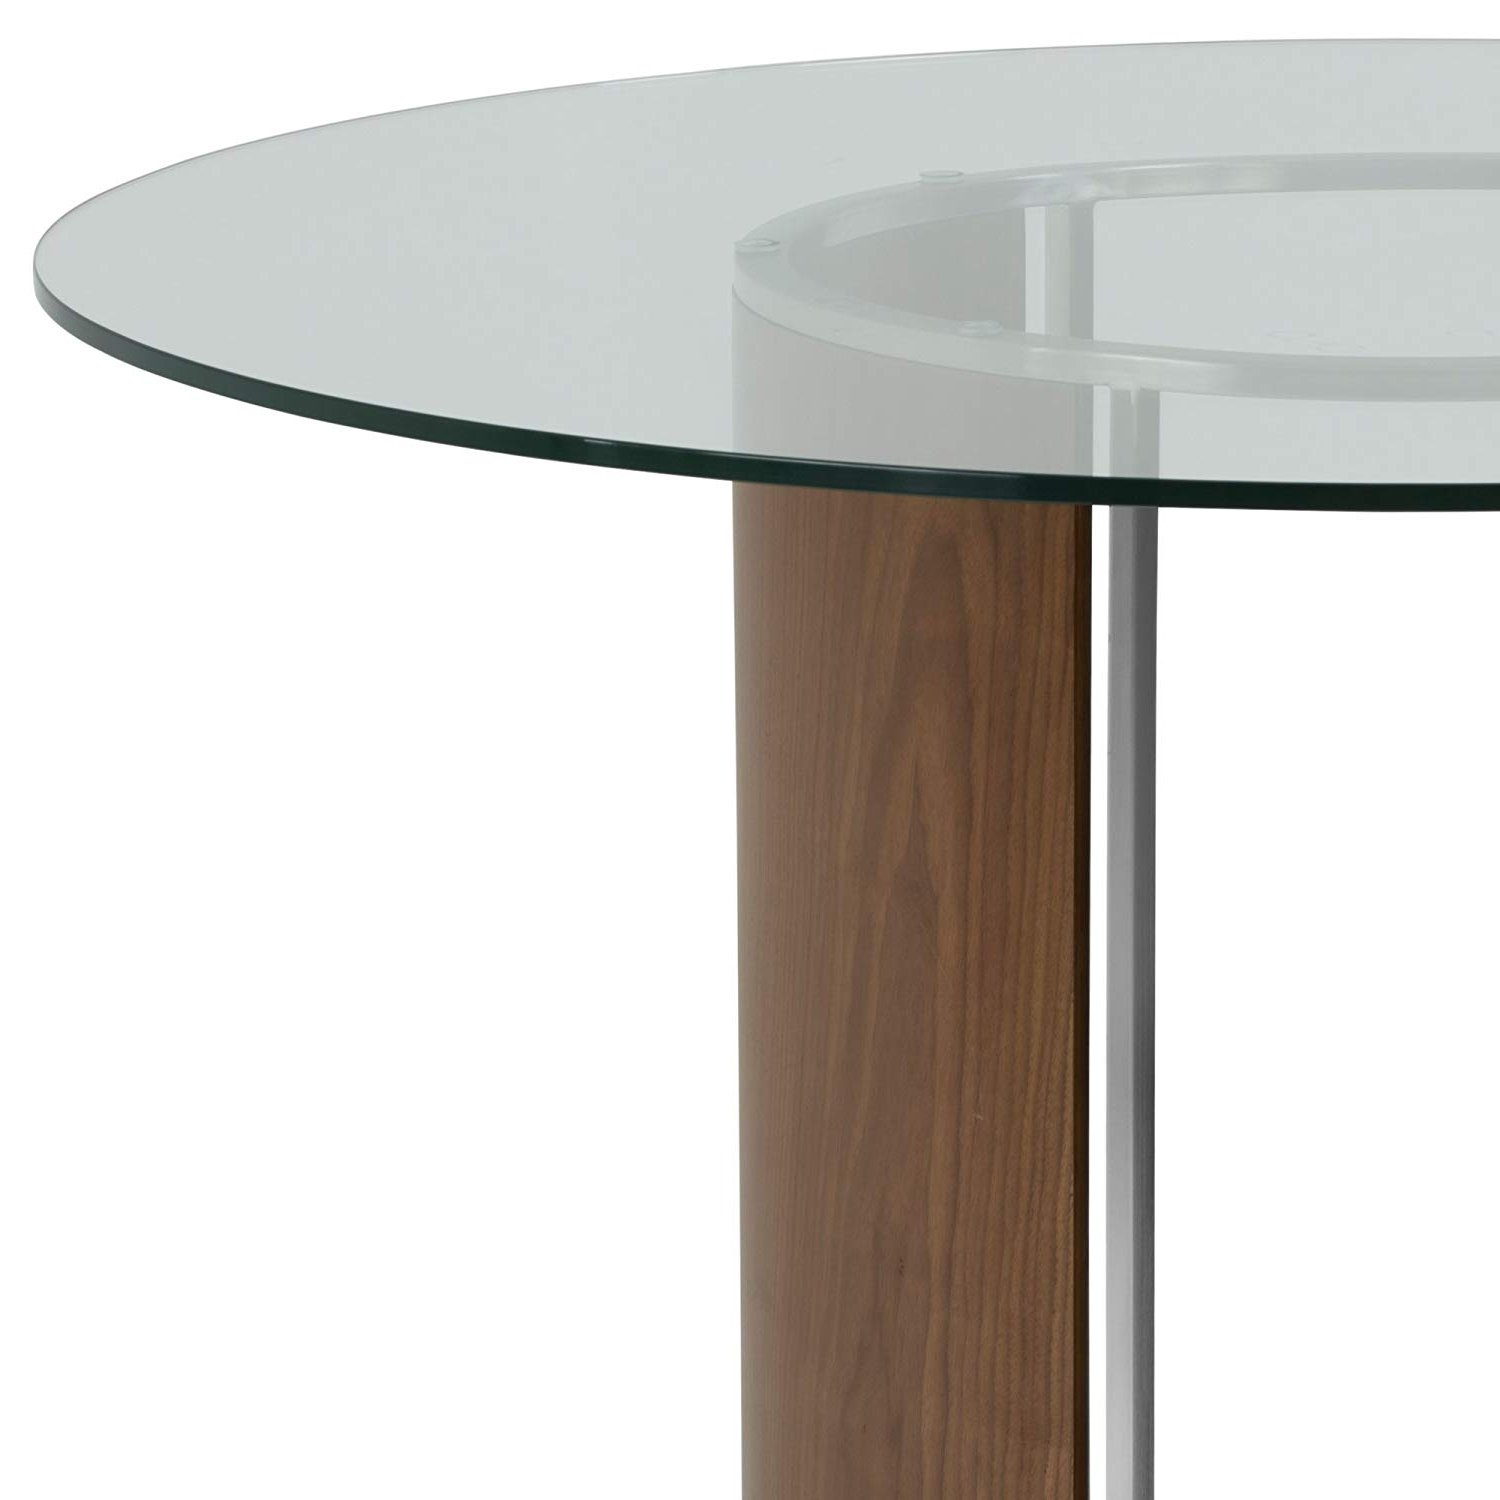 Most Recent Round Glass Top Dining Tables Pertaining To Armen Living Delano Dining Table With Clear Glass Top, Walnut Wood And  Brushed Stainless Steel Finish (Gallery 16 of 30)